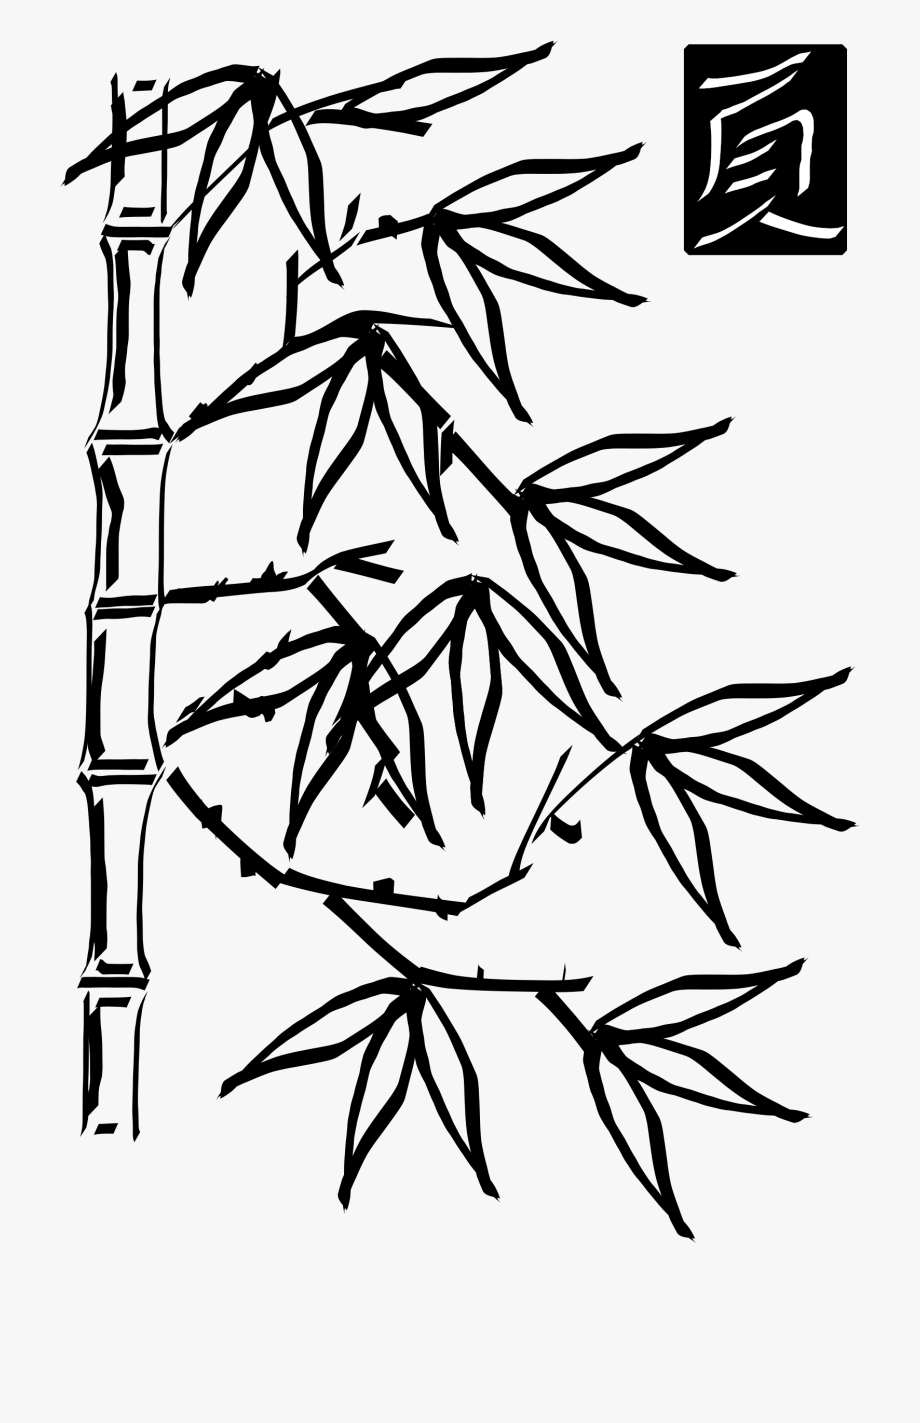 Bamboo clipart black and white. Tree free